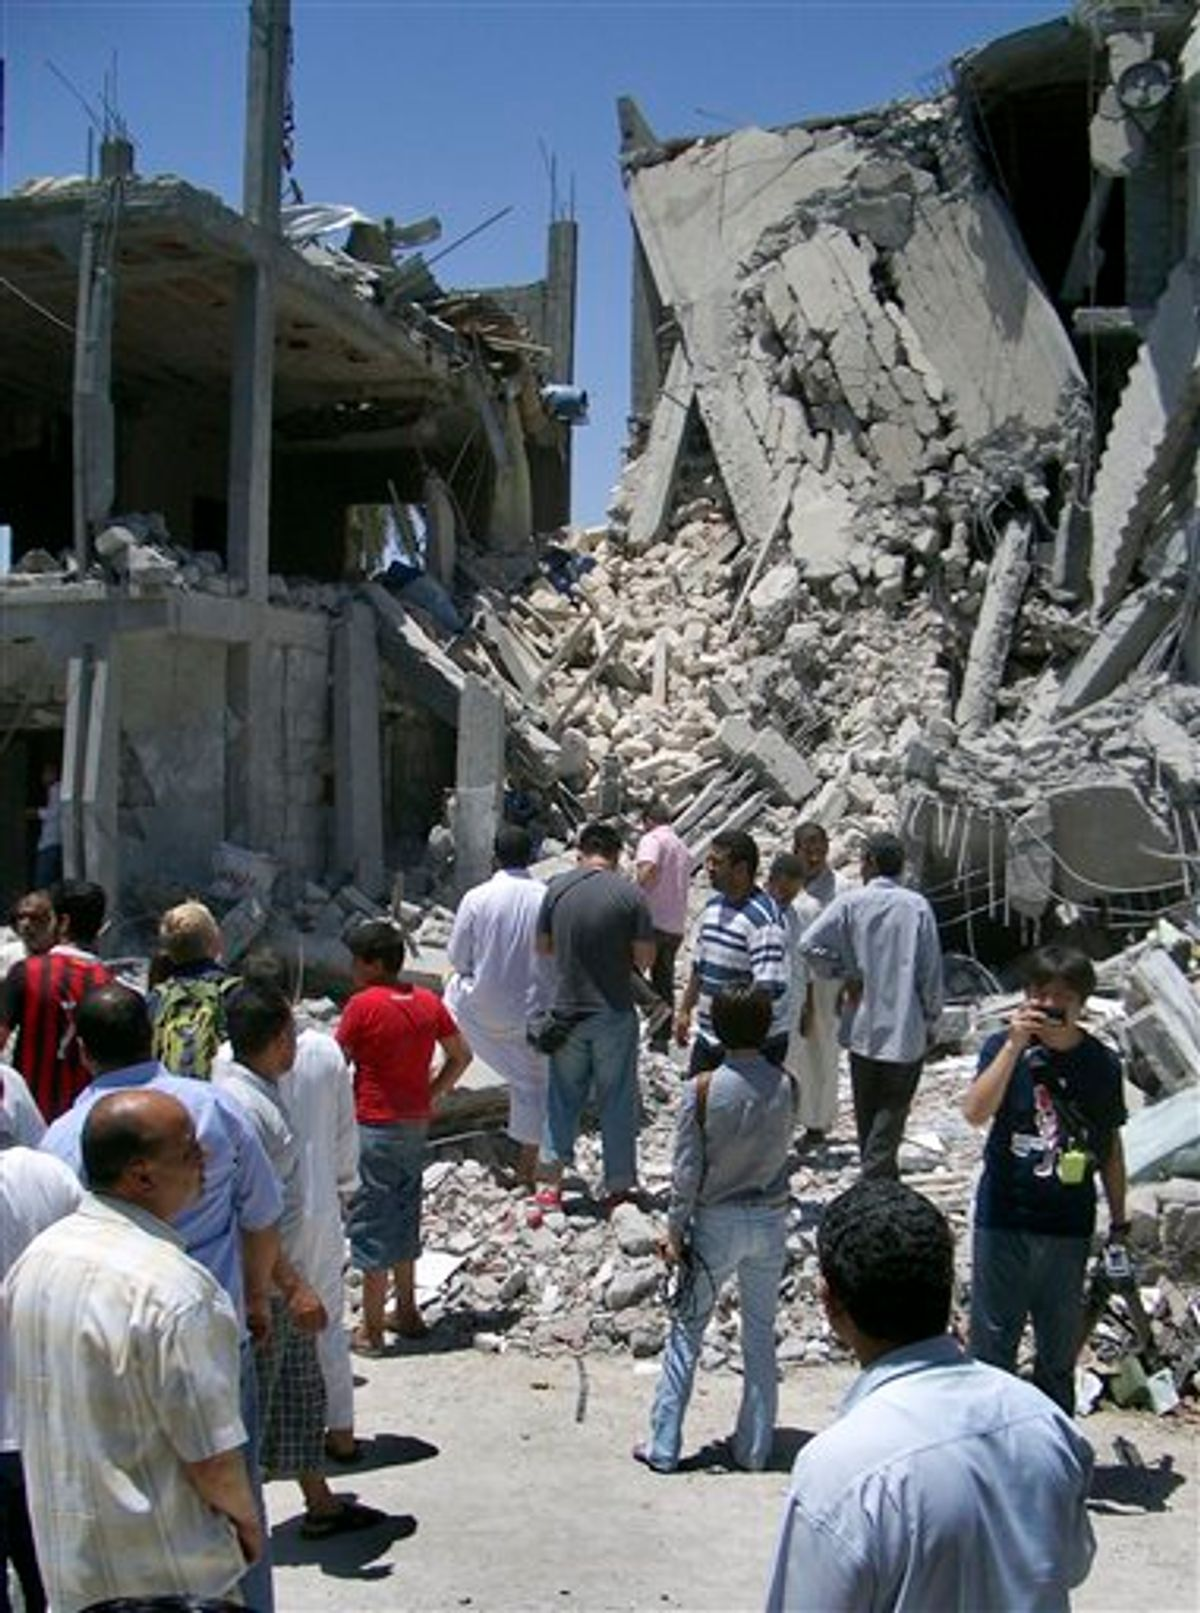 In this photo taken on a government-organized tour, media and others examine the remains of a damaged residential building in Tripoli, Libya, Sunday, June 19, 2011.  The Libyan government accused NATO of bombing a residential neighborhood in the capital and killing civilians early Sunday, adding to its charges that the alliance is striking non-military targets. (AP Photo/Adam Schreck) (AP)